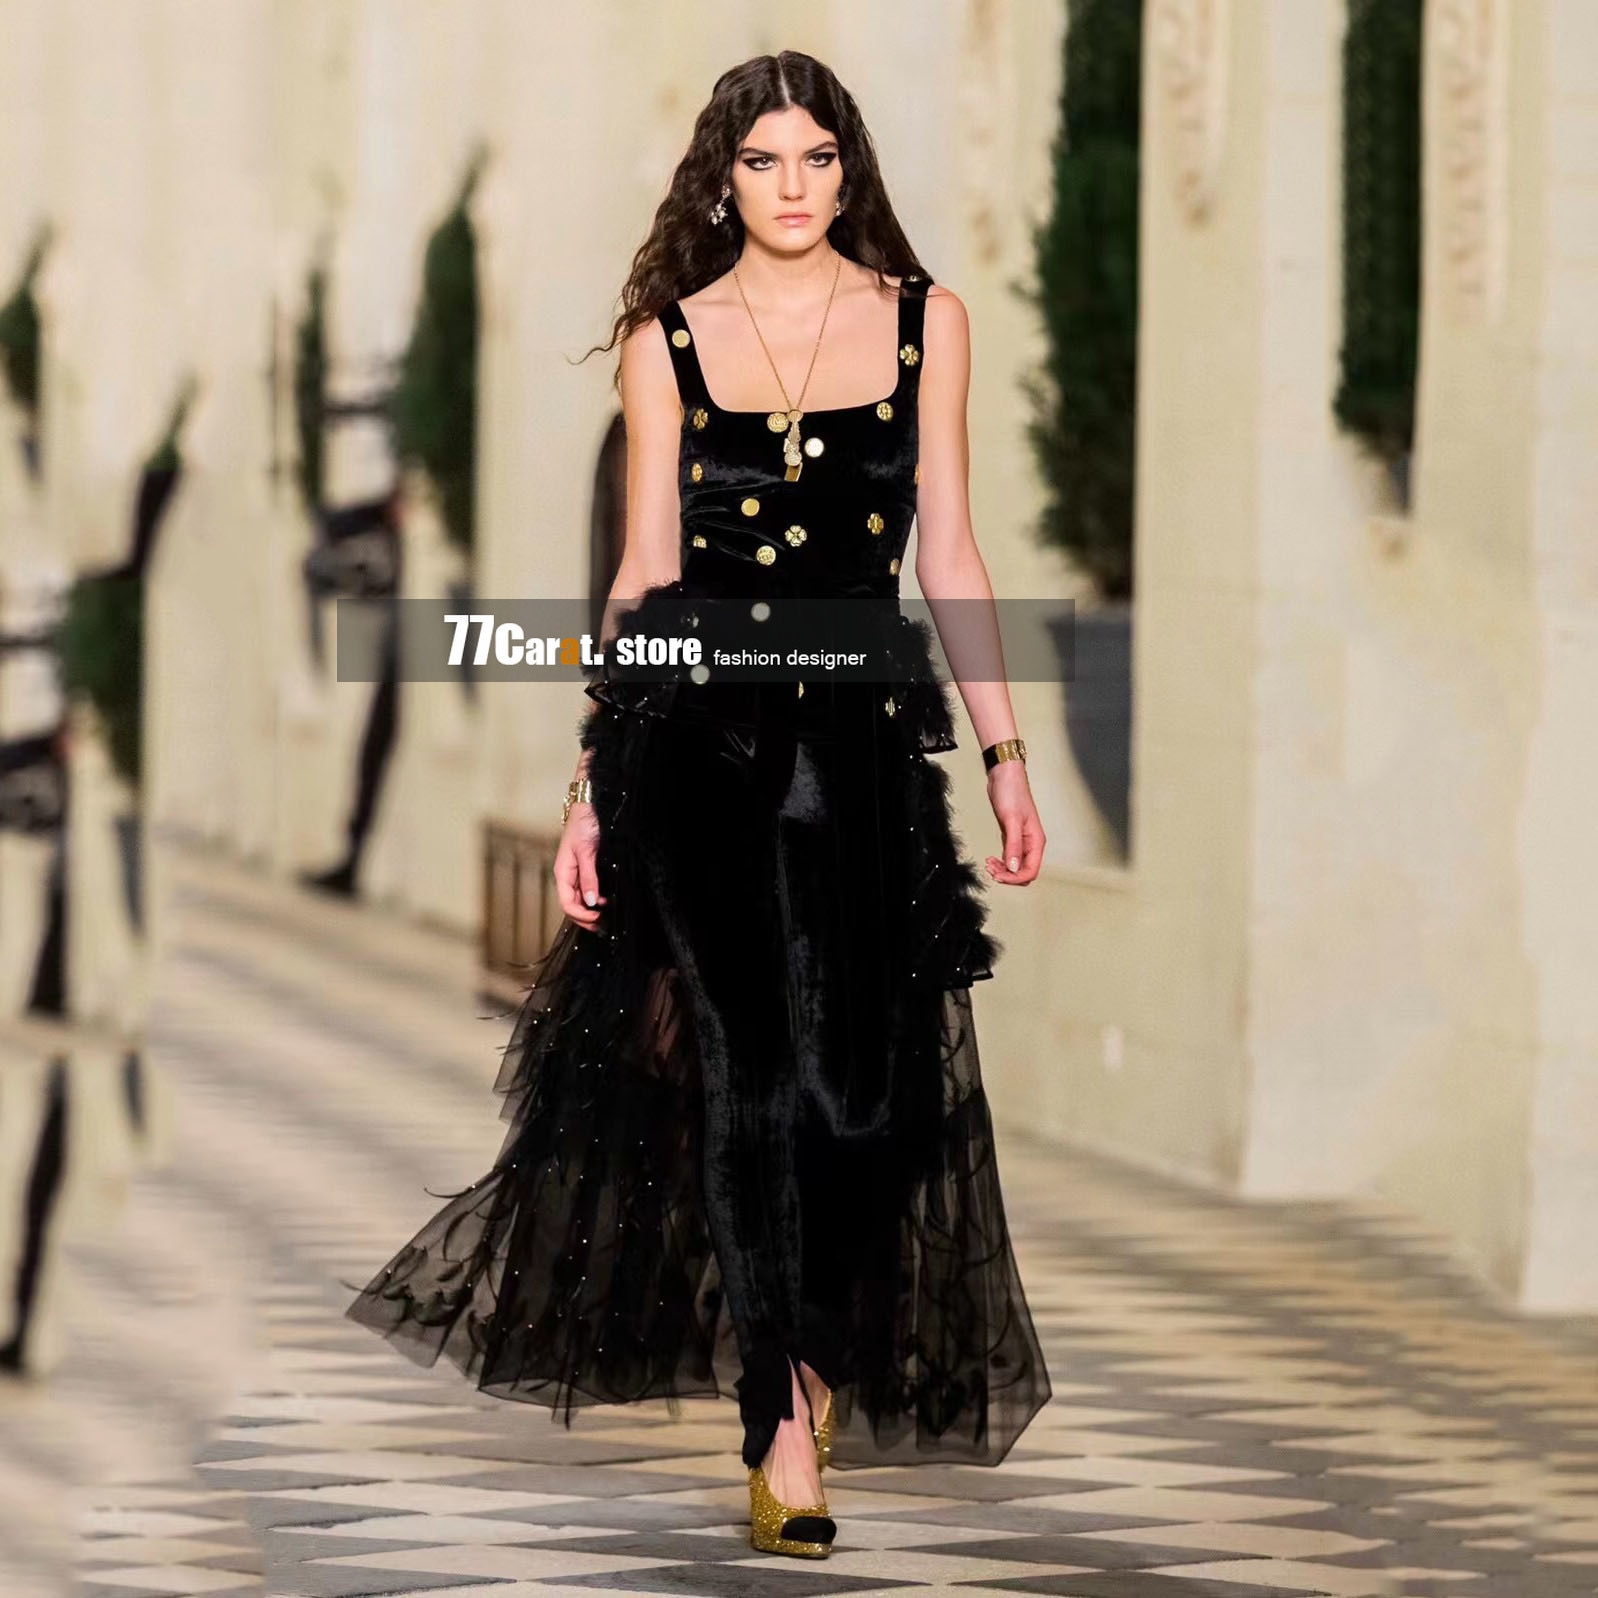 runway early autumn 2021 new style fashion womens tops for women luxury designer spaghetti strap tank top velvet branded clothes